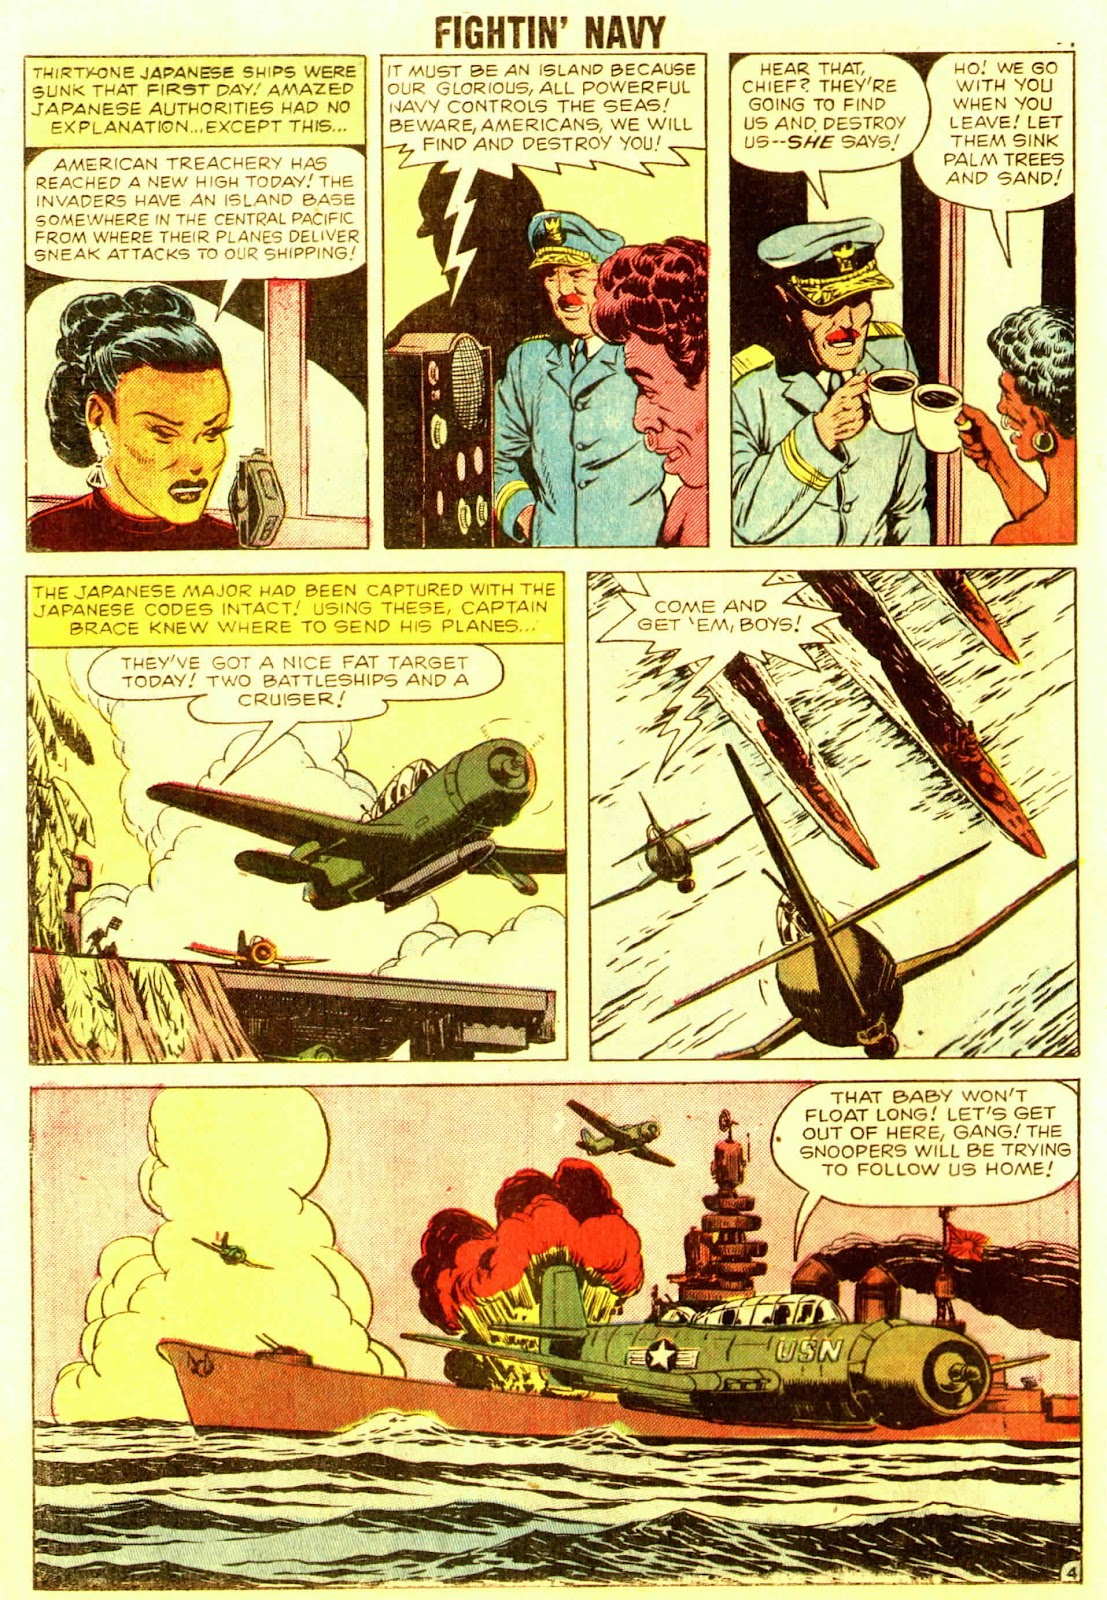 Read online Fightin' Navy comic -  Issue #83 - 86